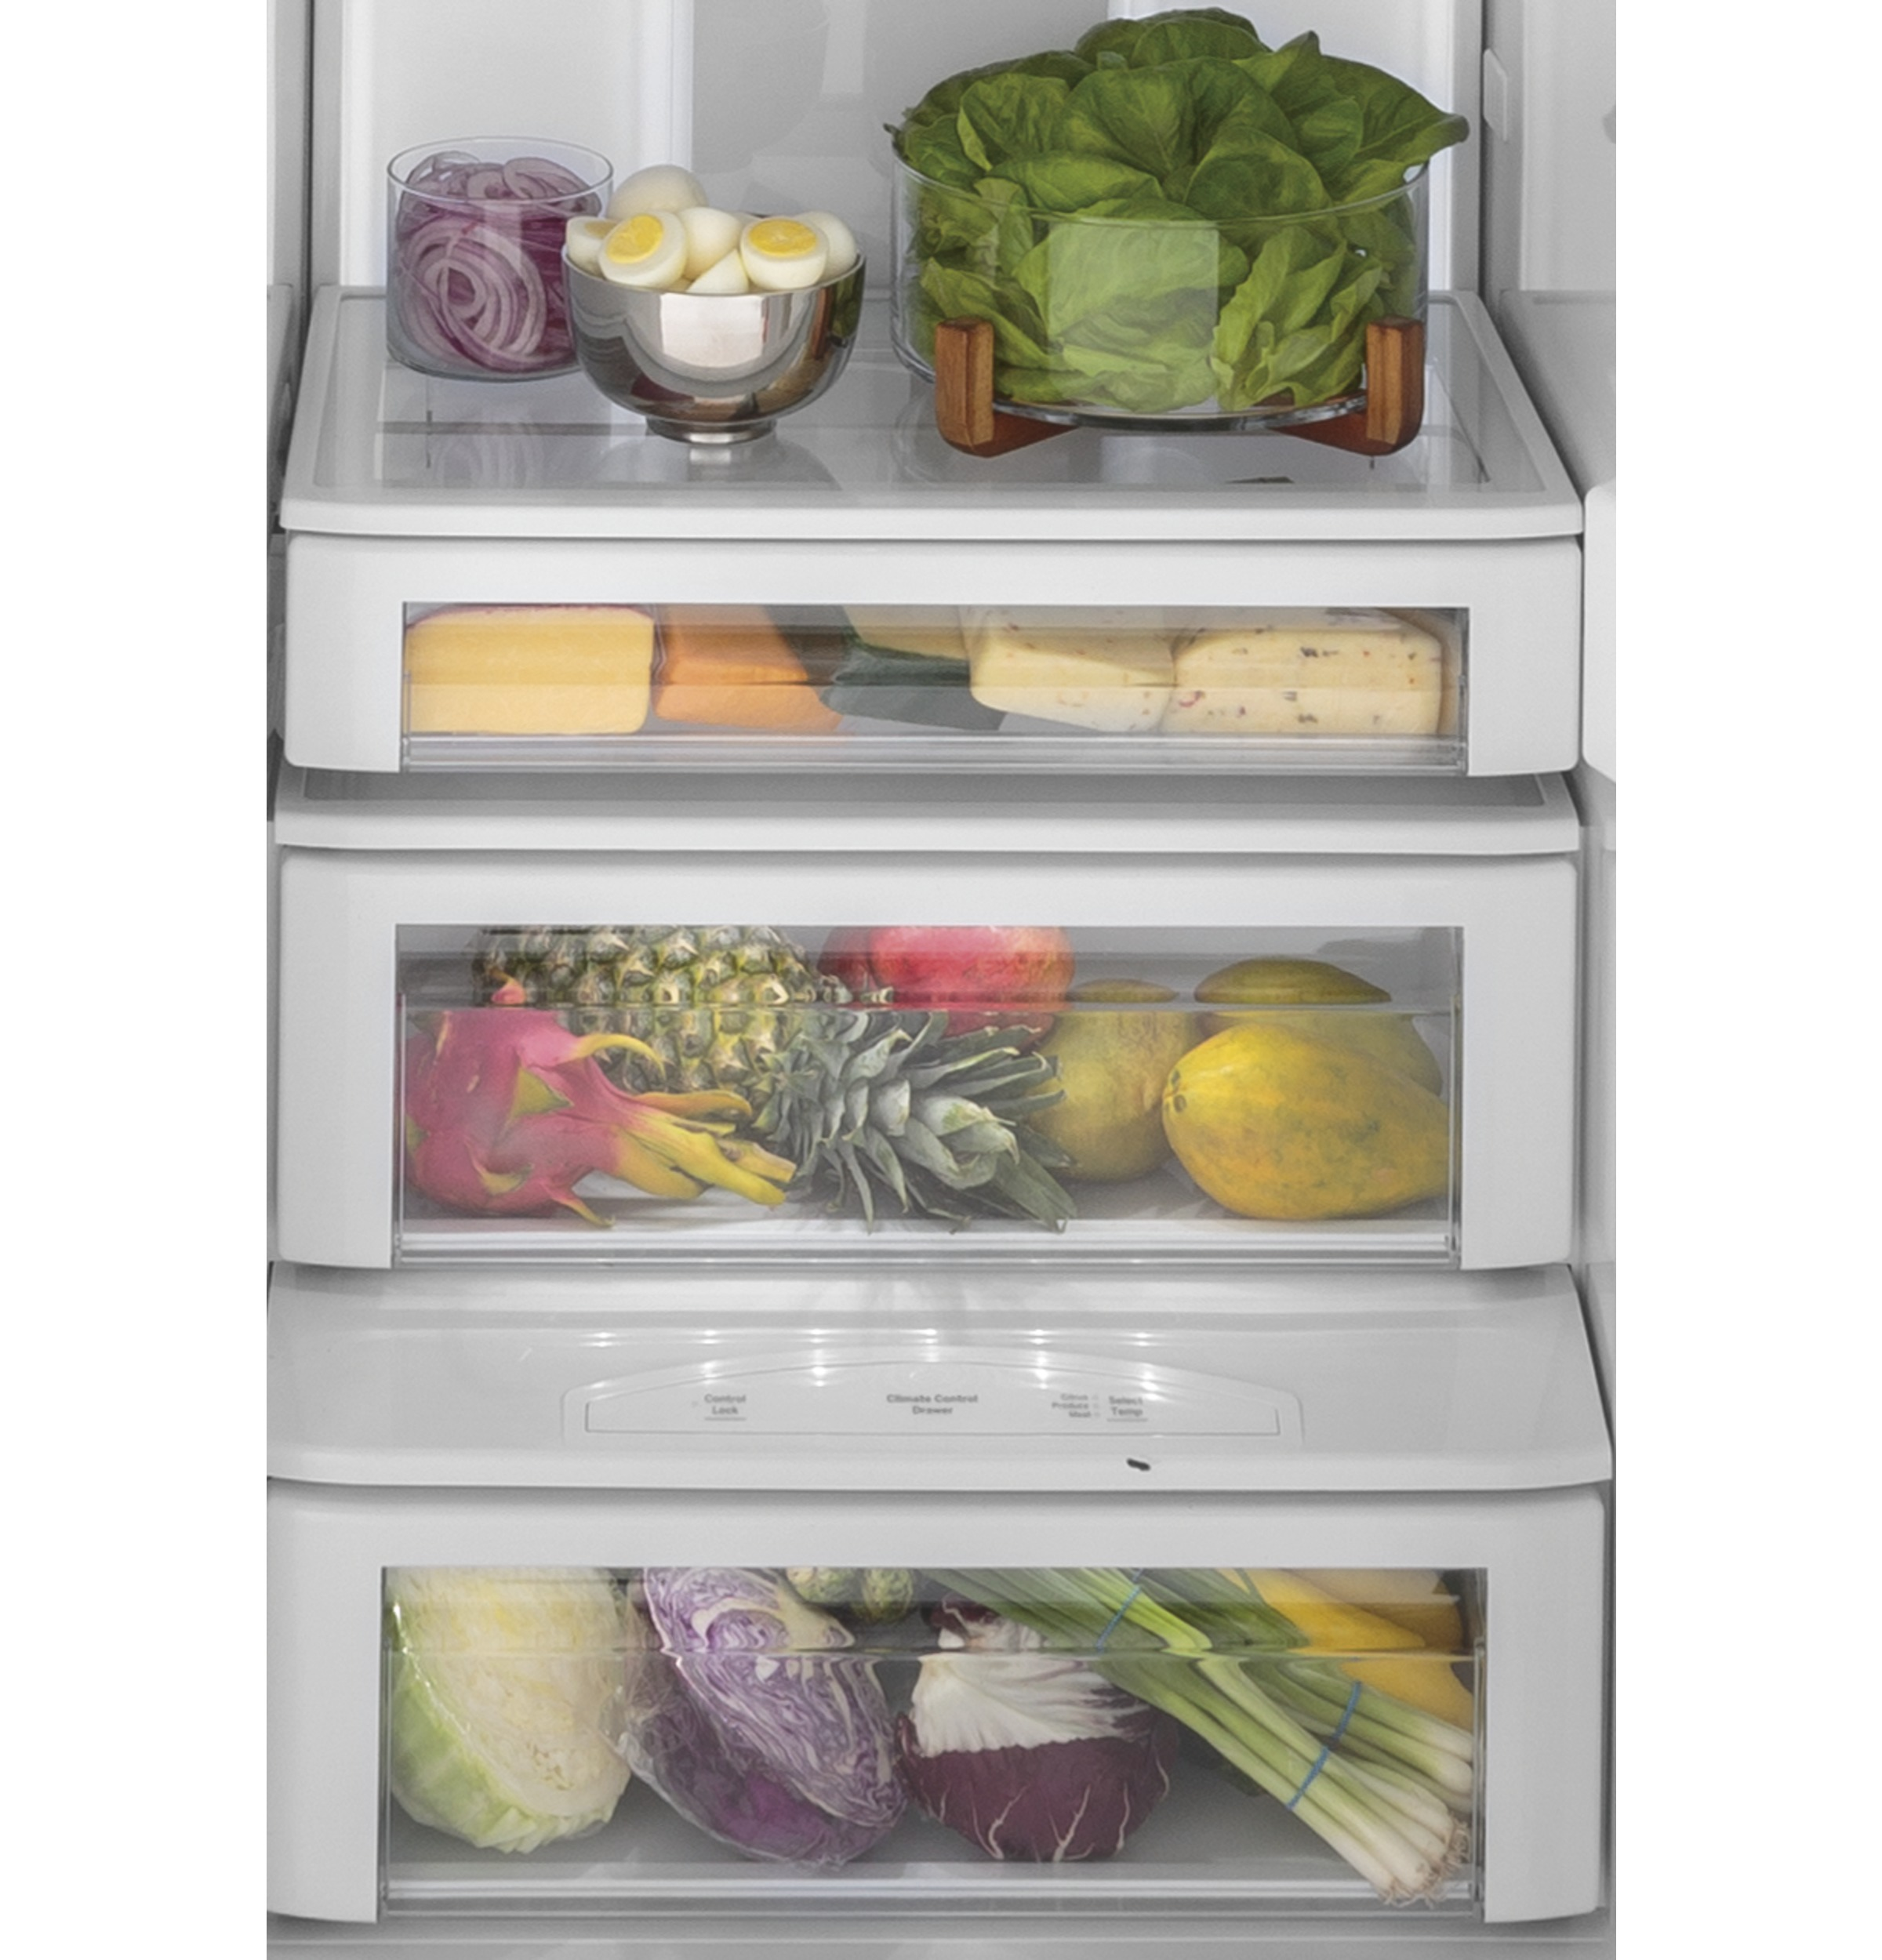 "Model: PSB42YSNSS | GE Profile GE Profile™ Series 42"" Smart Built-In Side-by-Side Refrigerator with Dispenser"